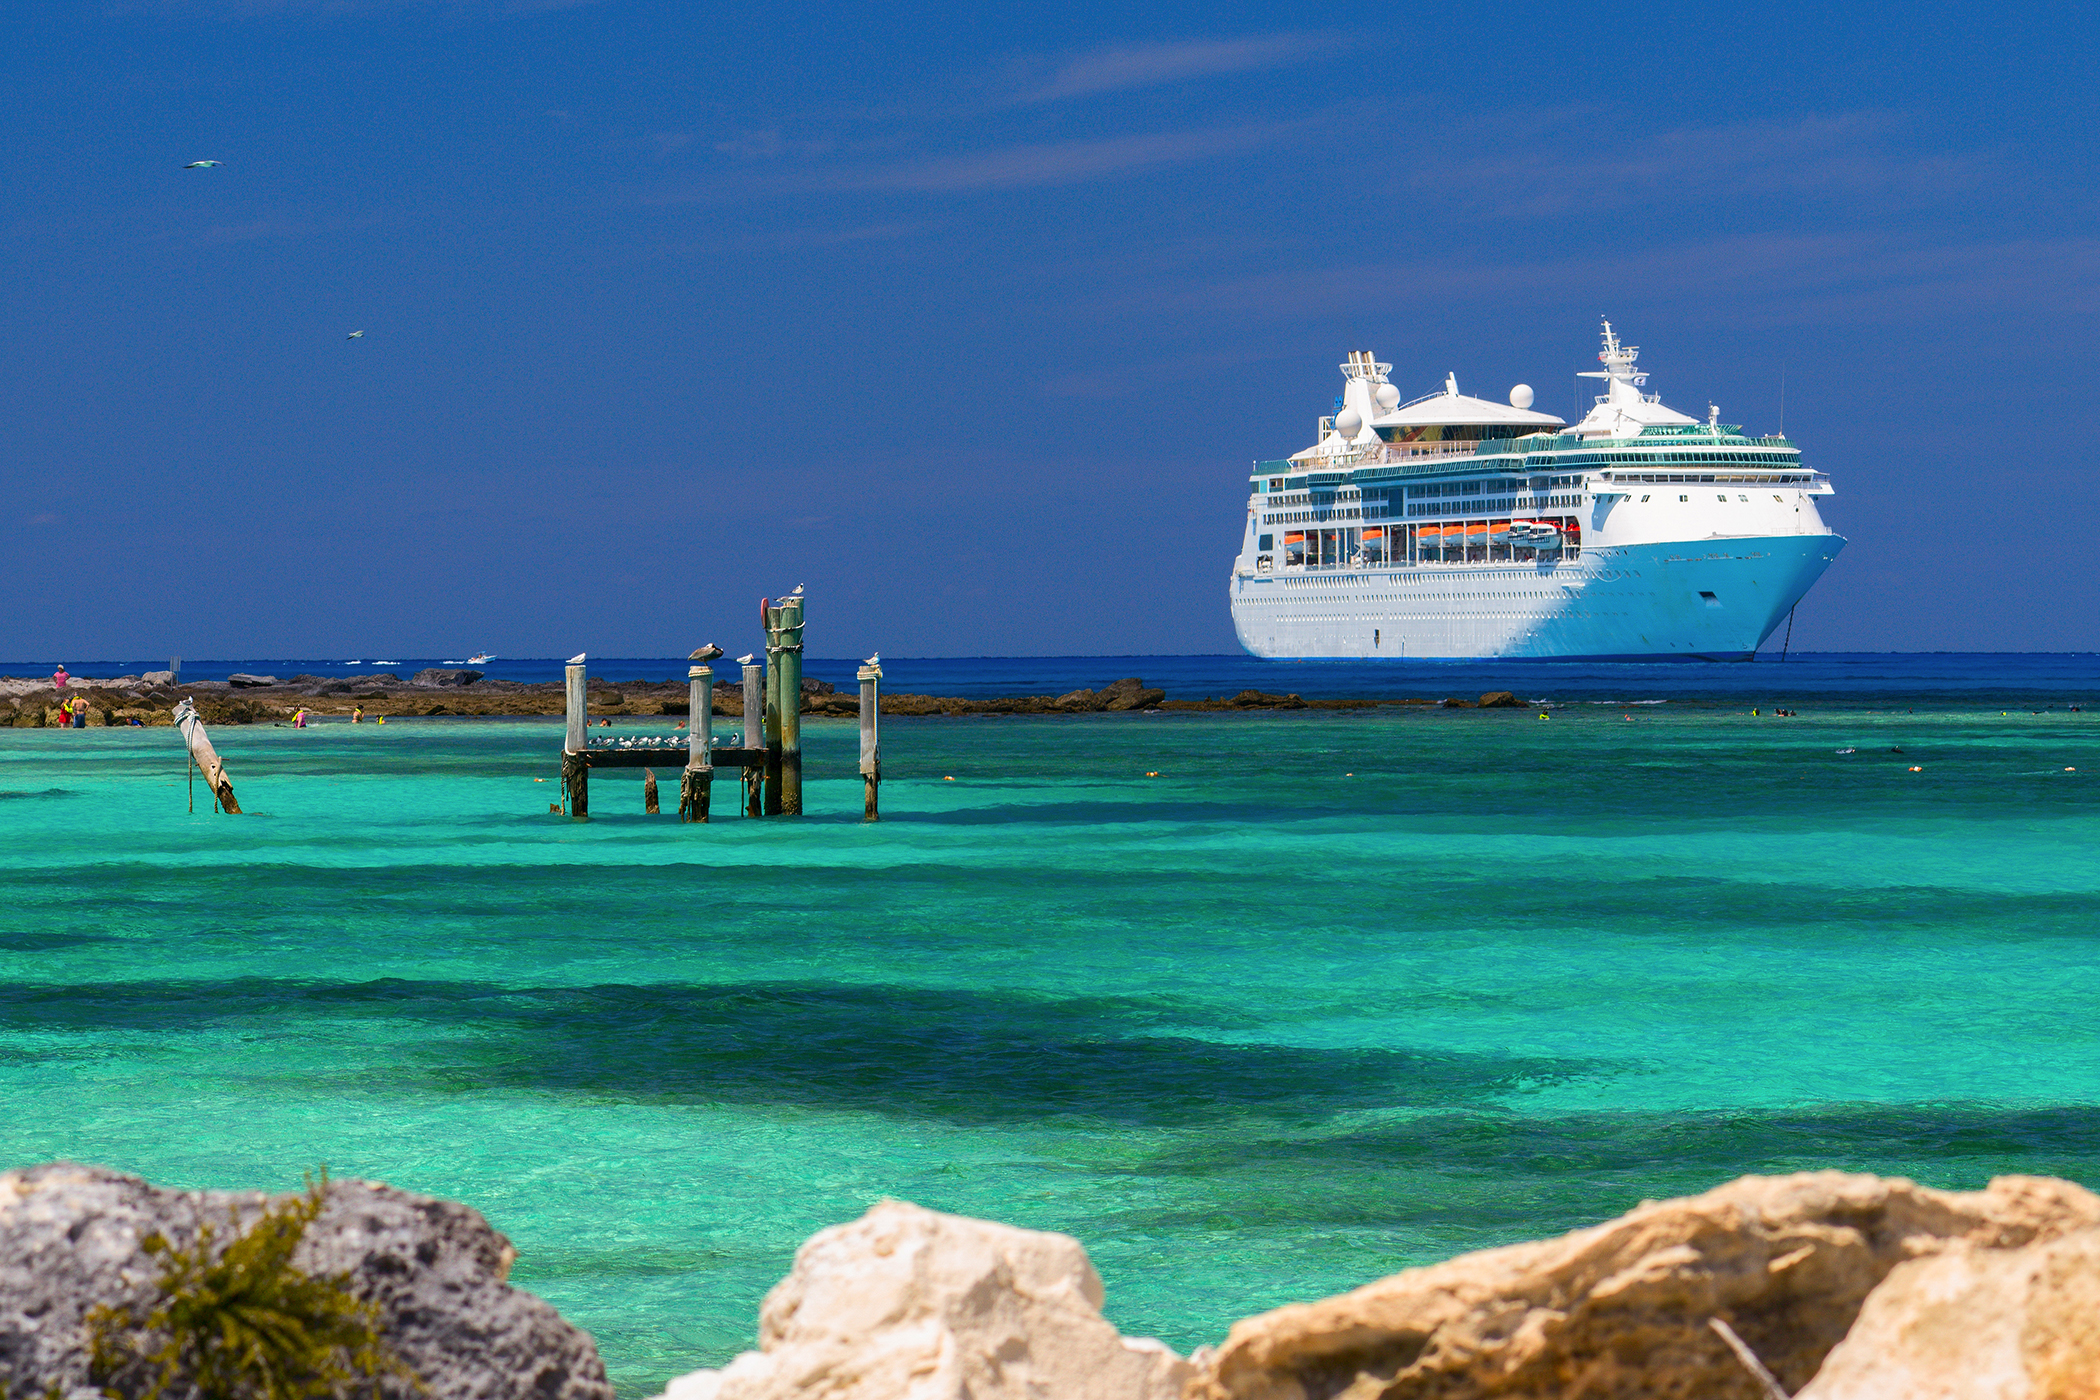 cruise ship anchored in the caribbean.